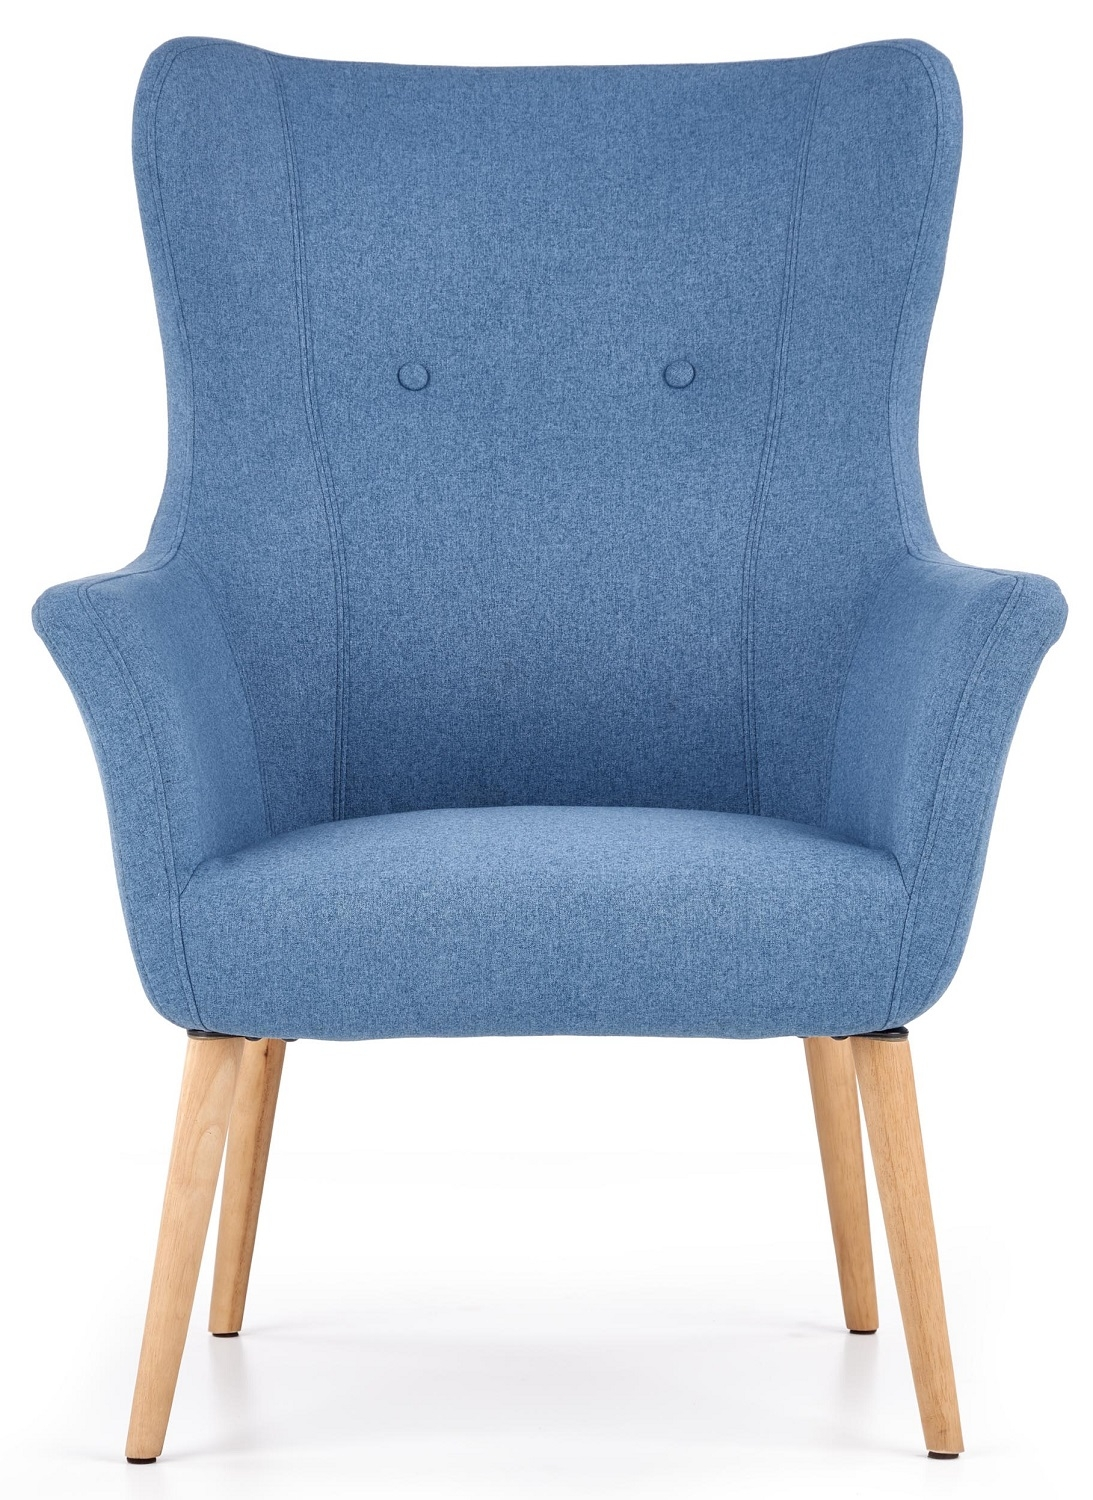 Fauteuil Cotto in blauw | Home Style